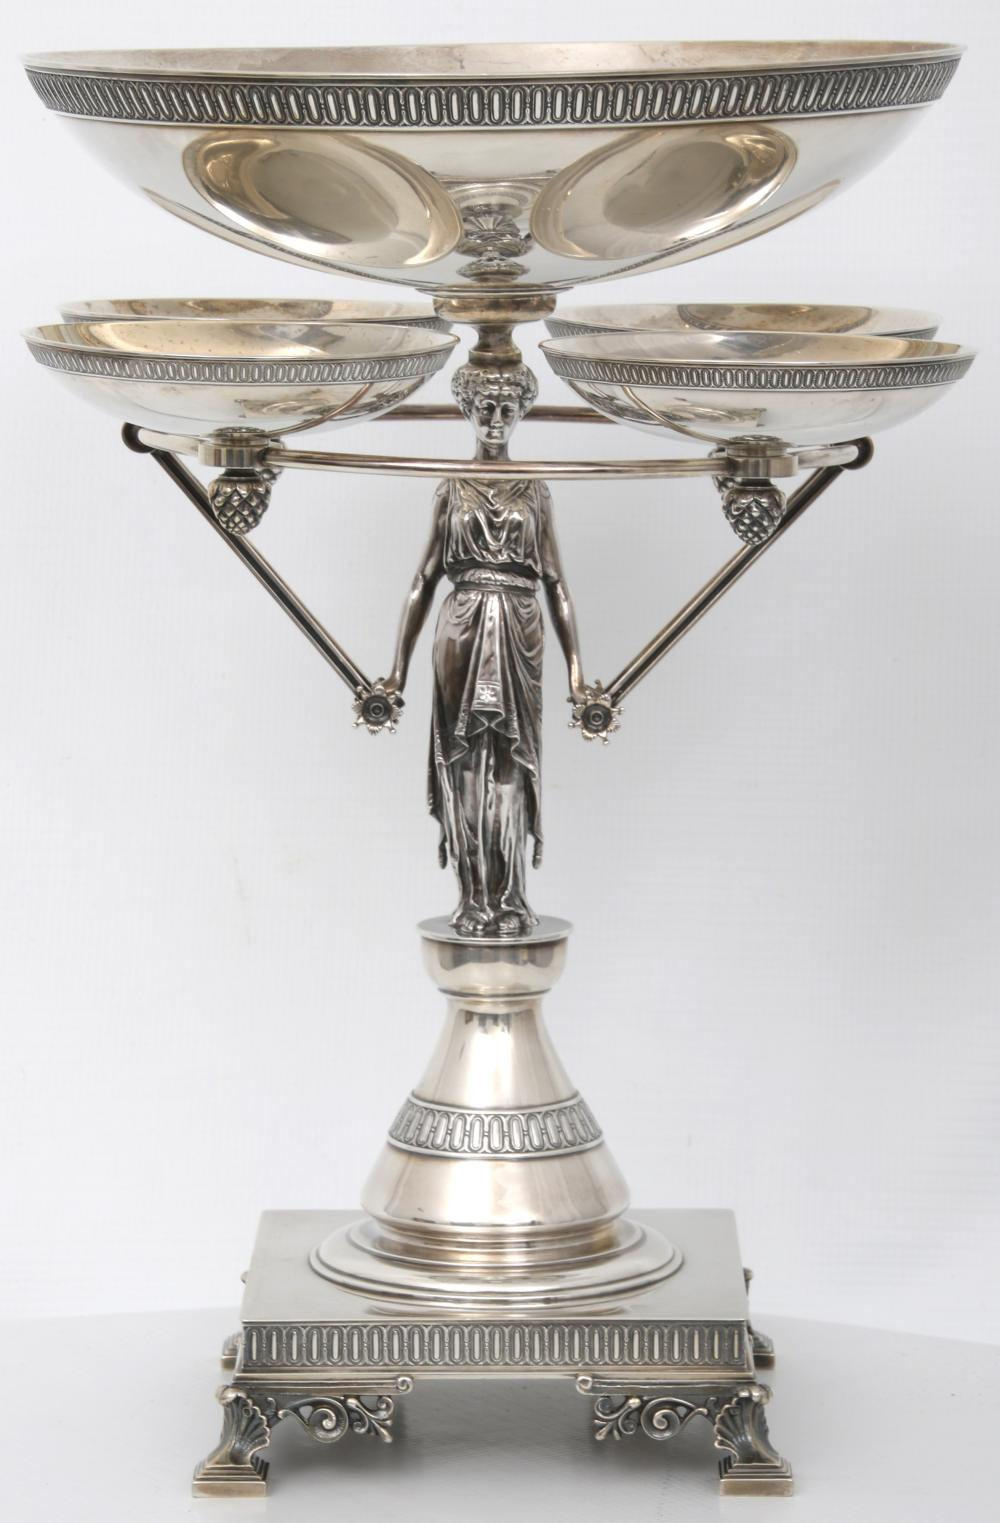 Tiffany & Co. Sterling Silver Figural Centerpiece